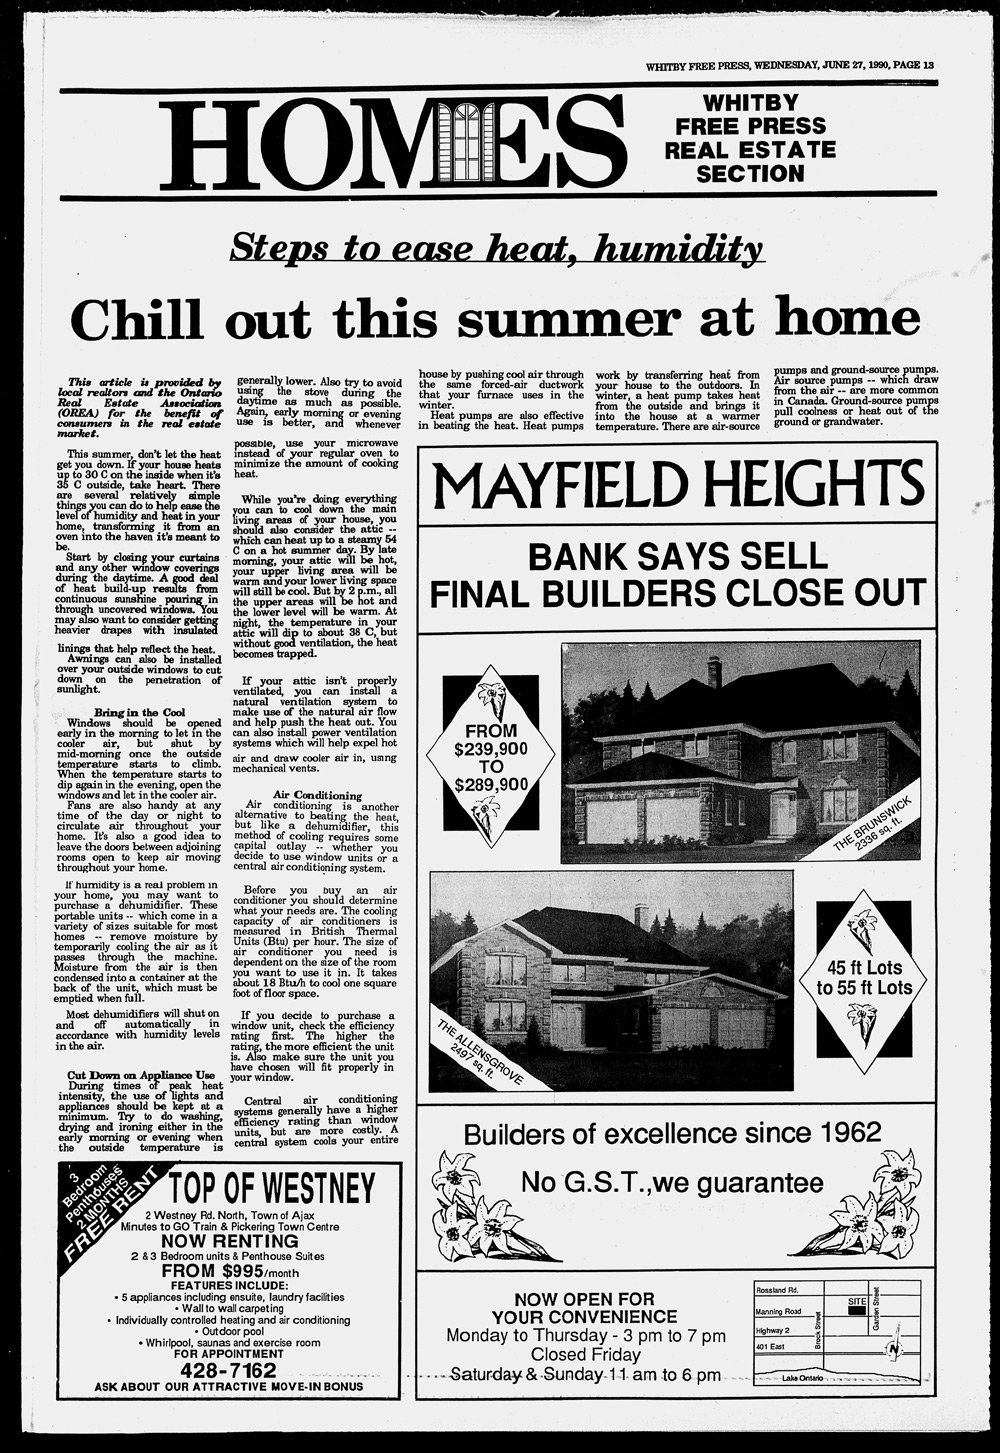 Whitby Free Press, 27 Jun 1990